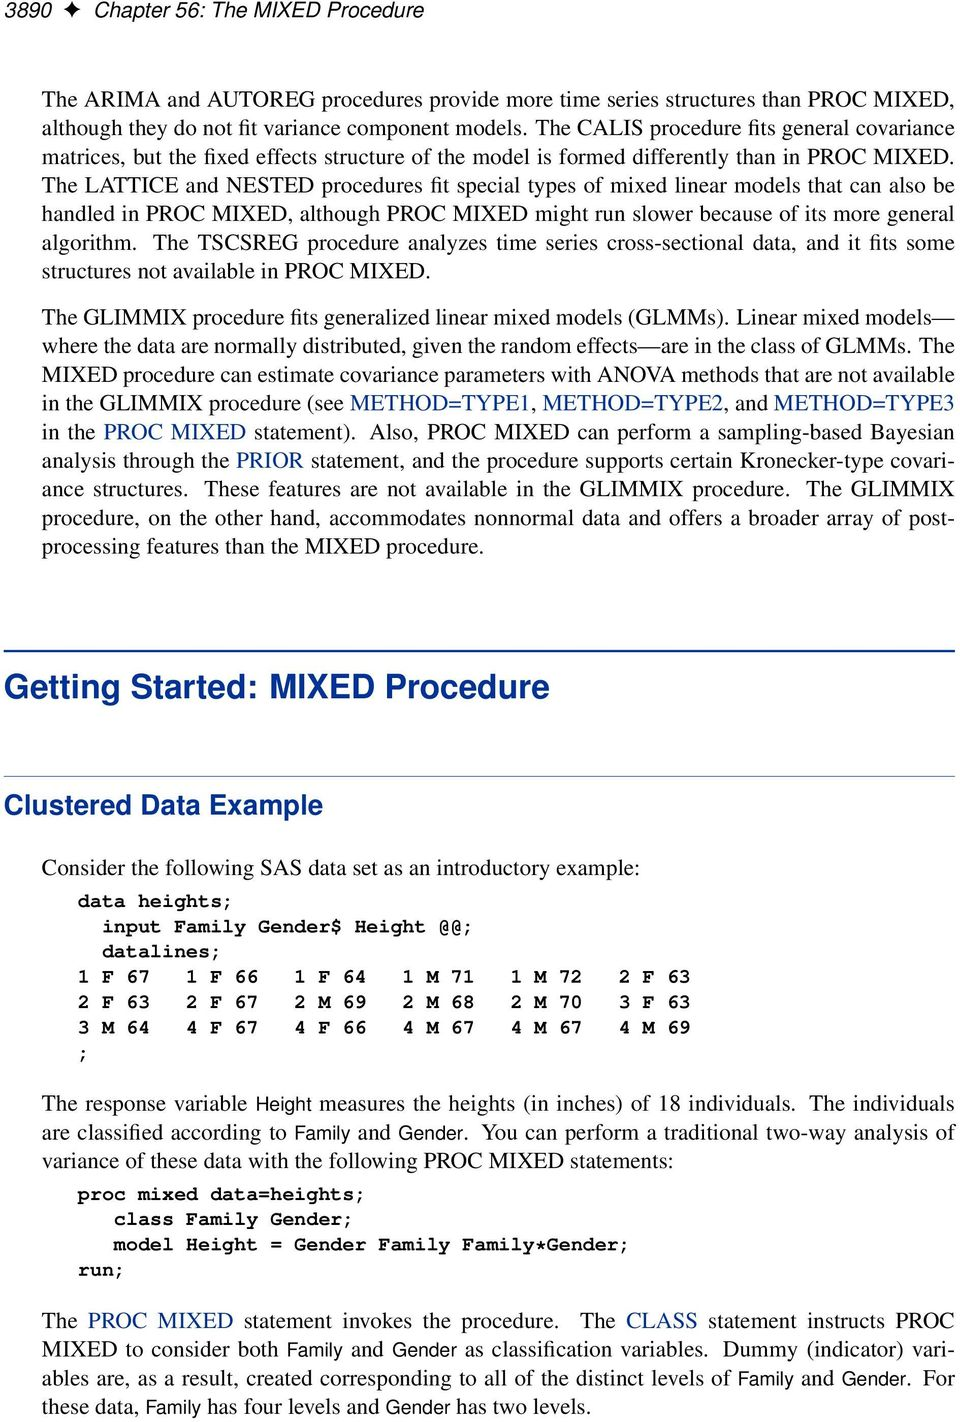 9 2 User s Guide SAS/STAT  The MIXED Procedure  (Book